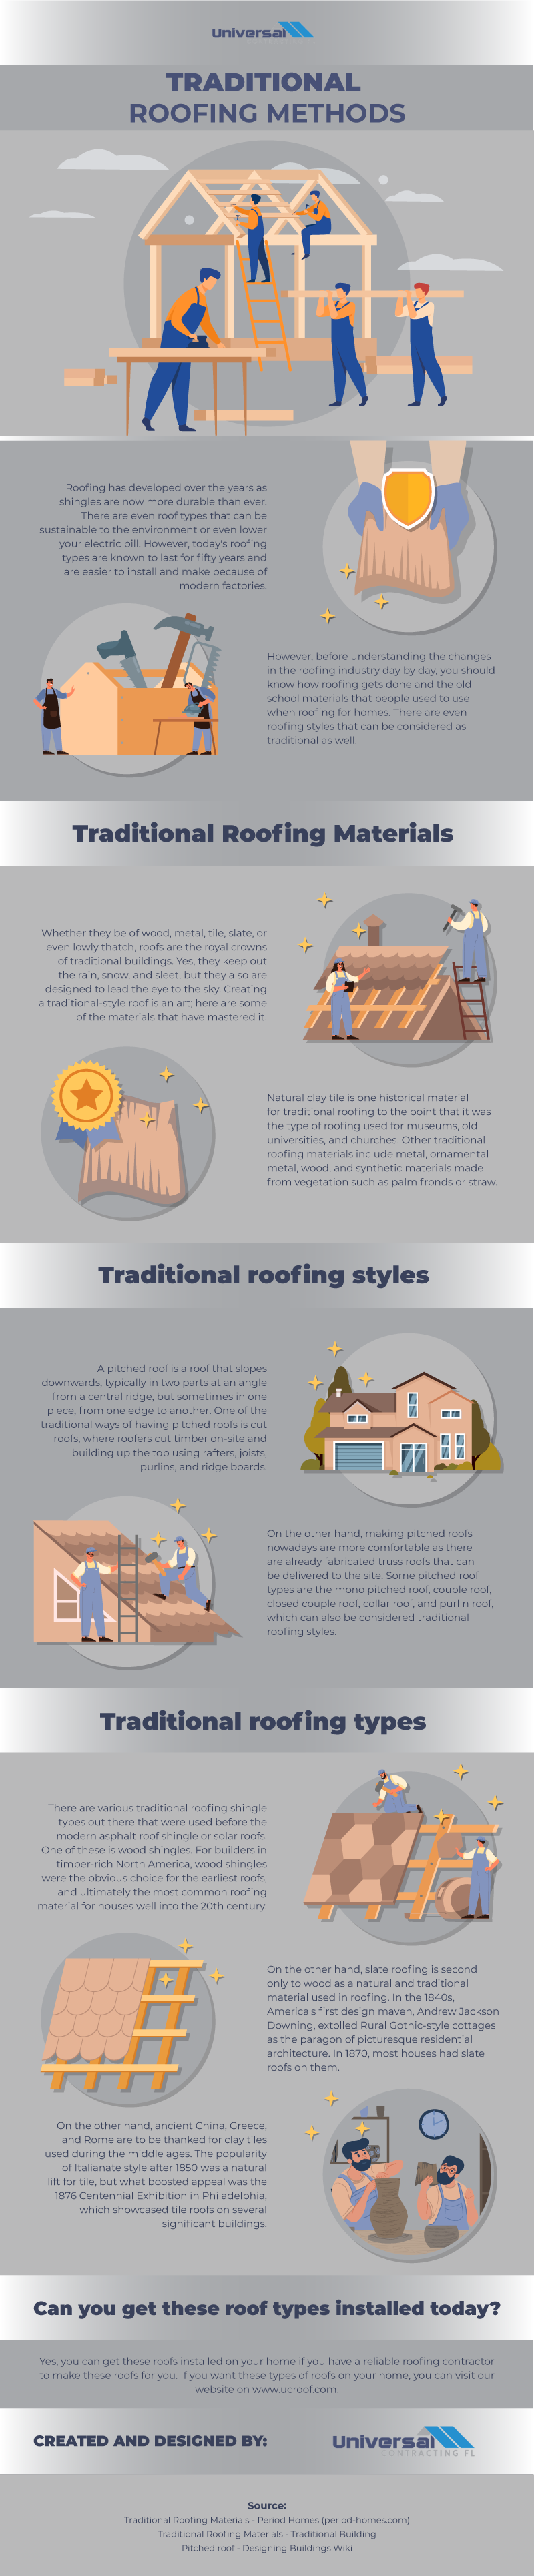 Traditional Roofing Methods - Infographic